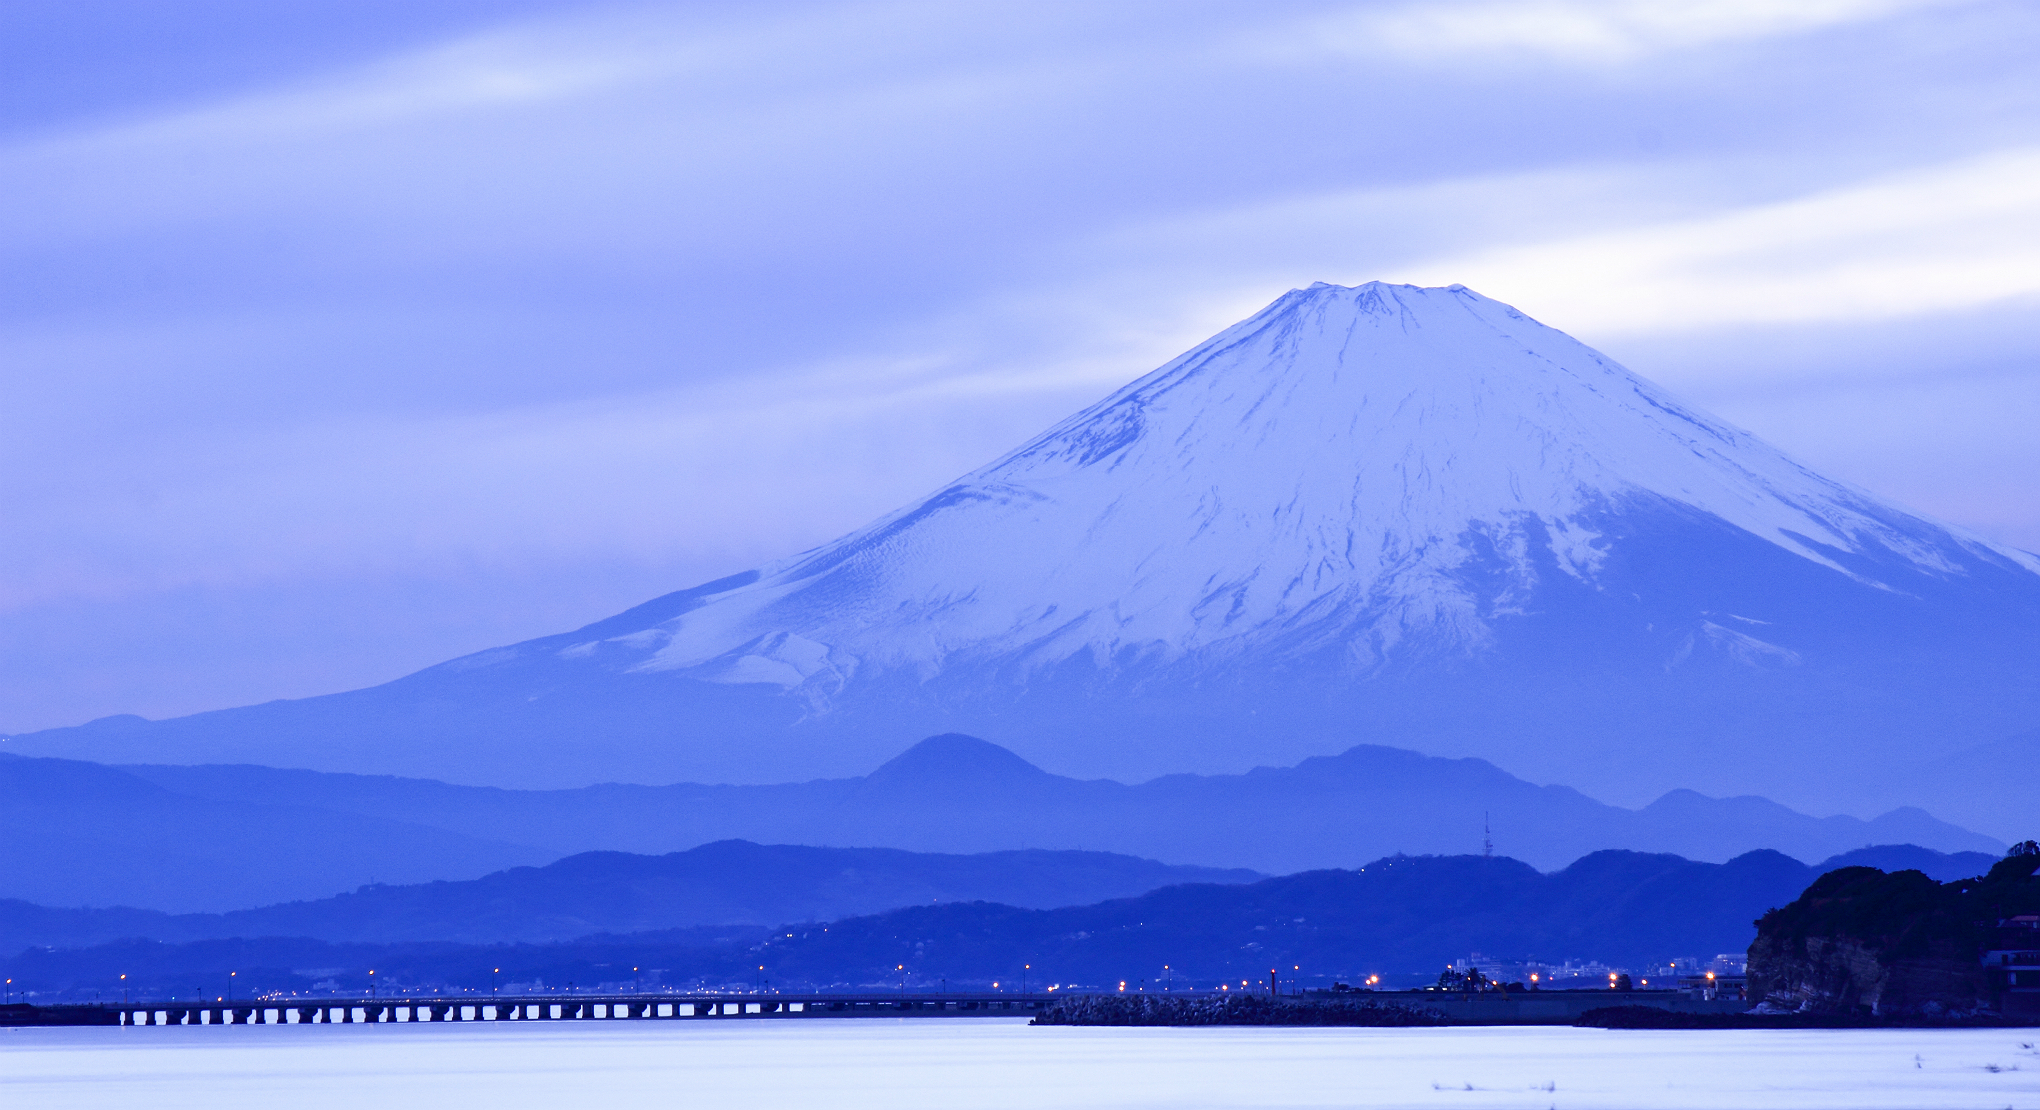 Japan Island Honshu Mountain Fuji Sea Wallpaper 2040x1110